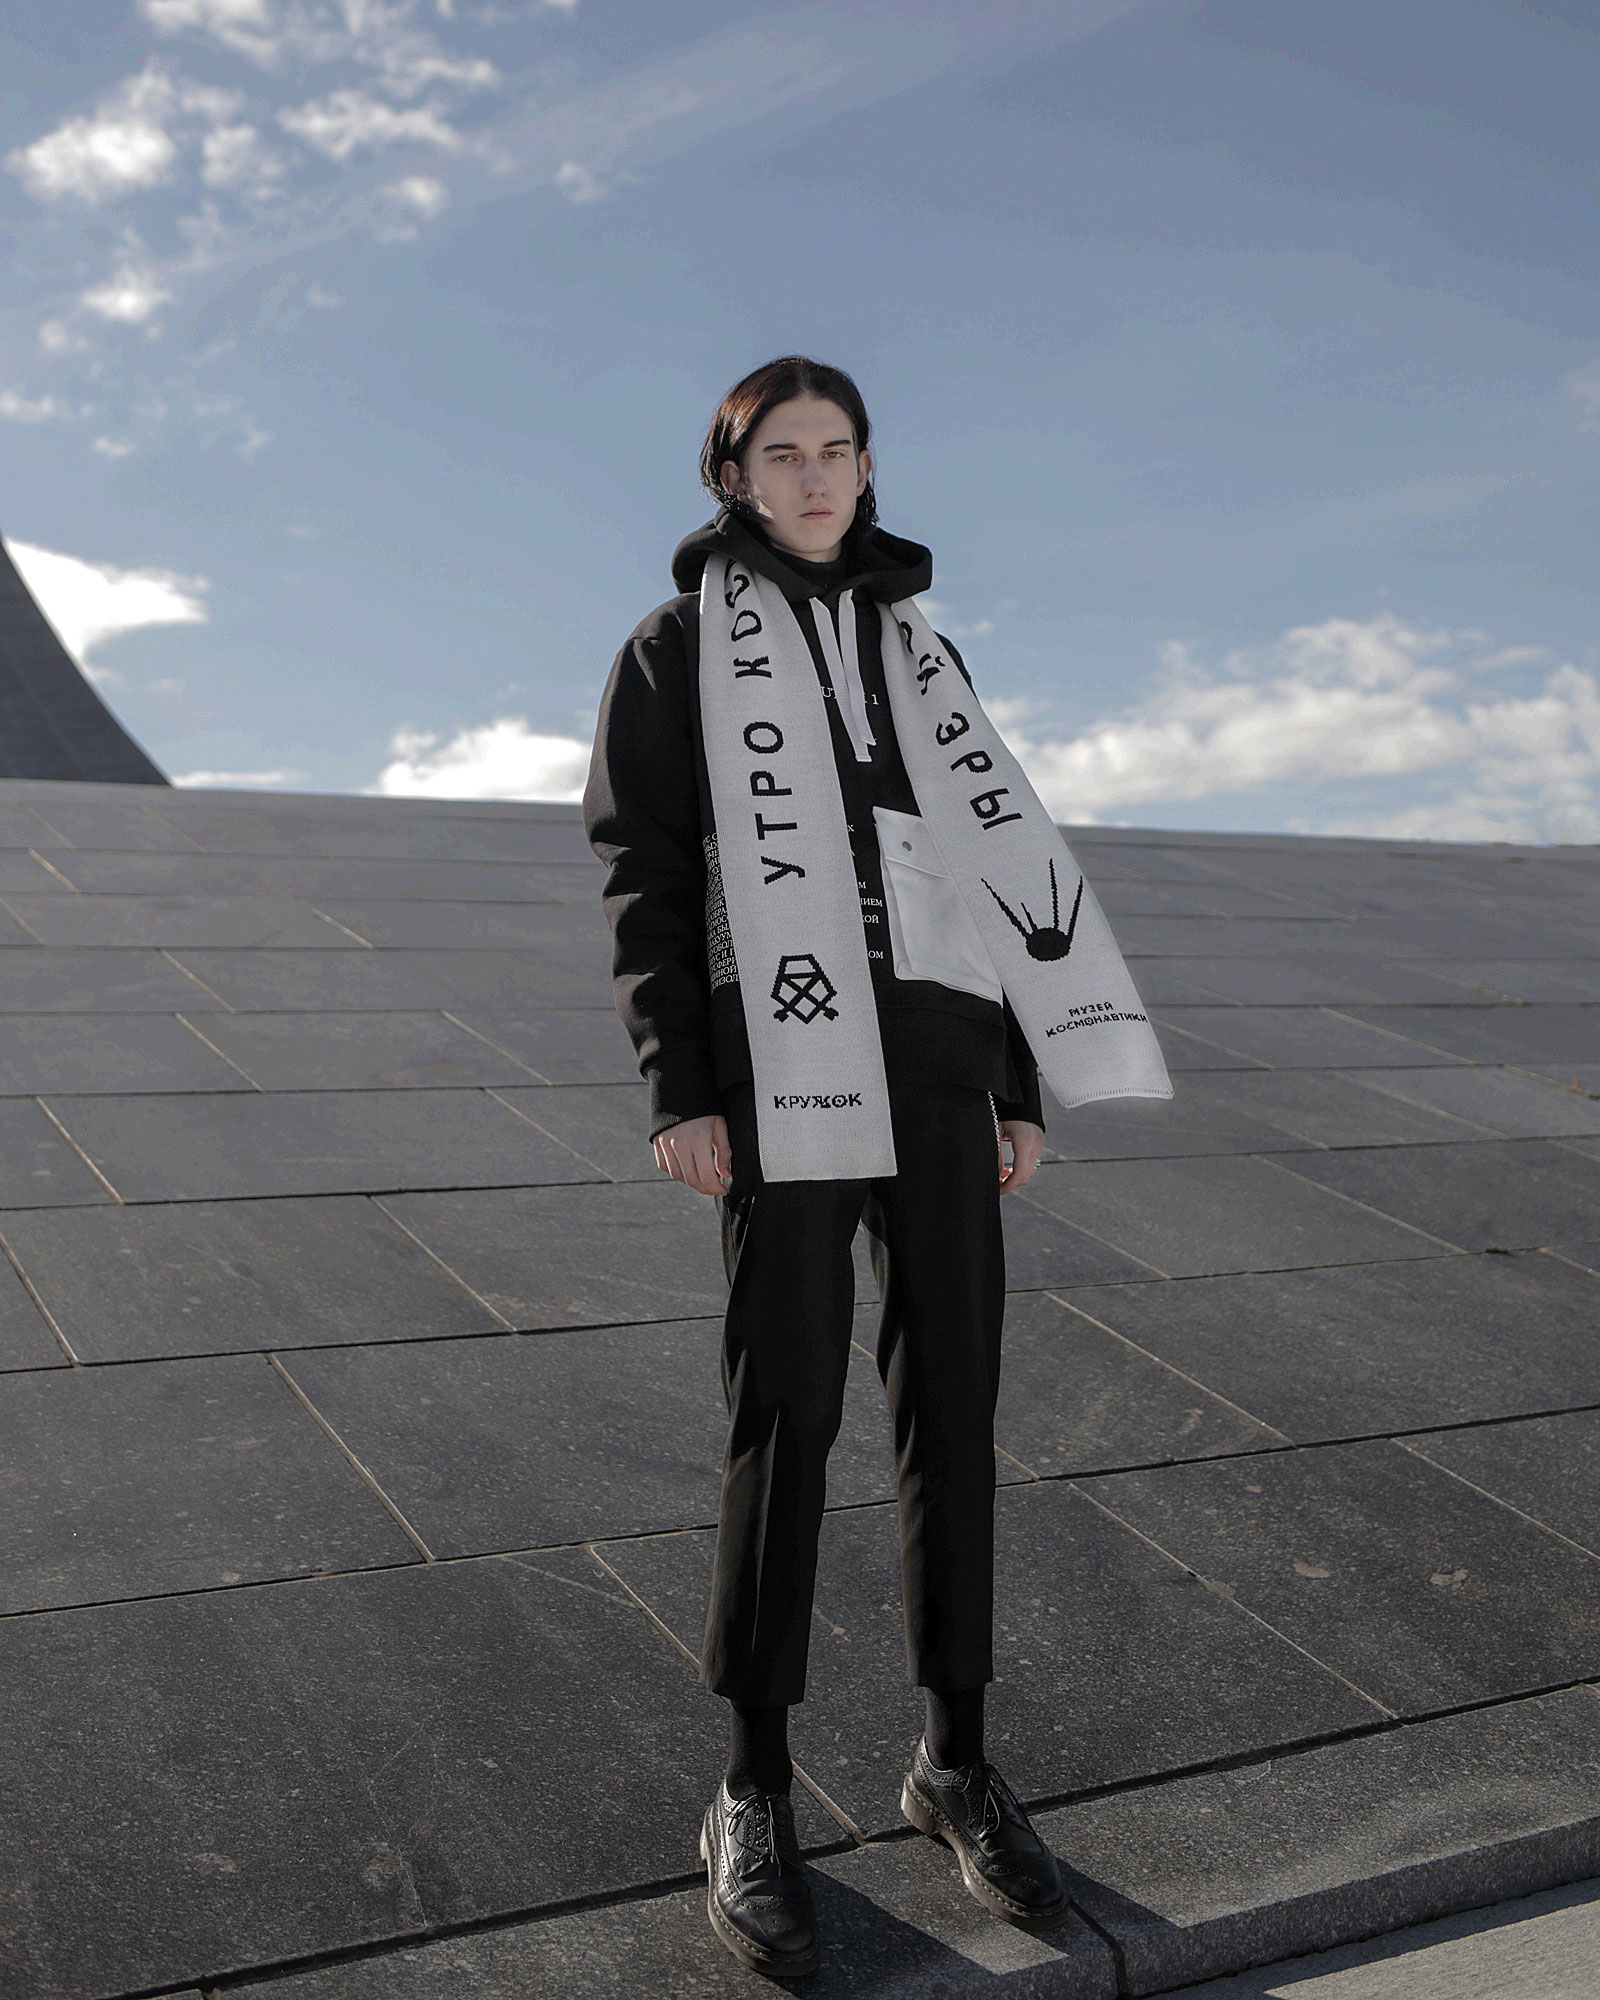 huge selection of cb33a e1d8e 5 Eastern European streetwear brands you need to know — The ...